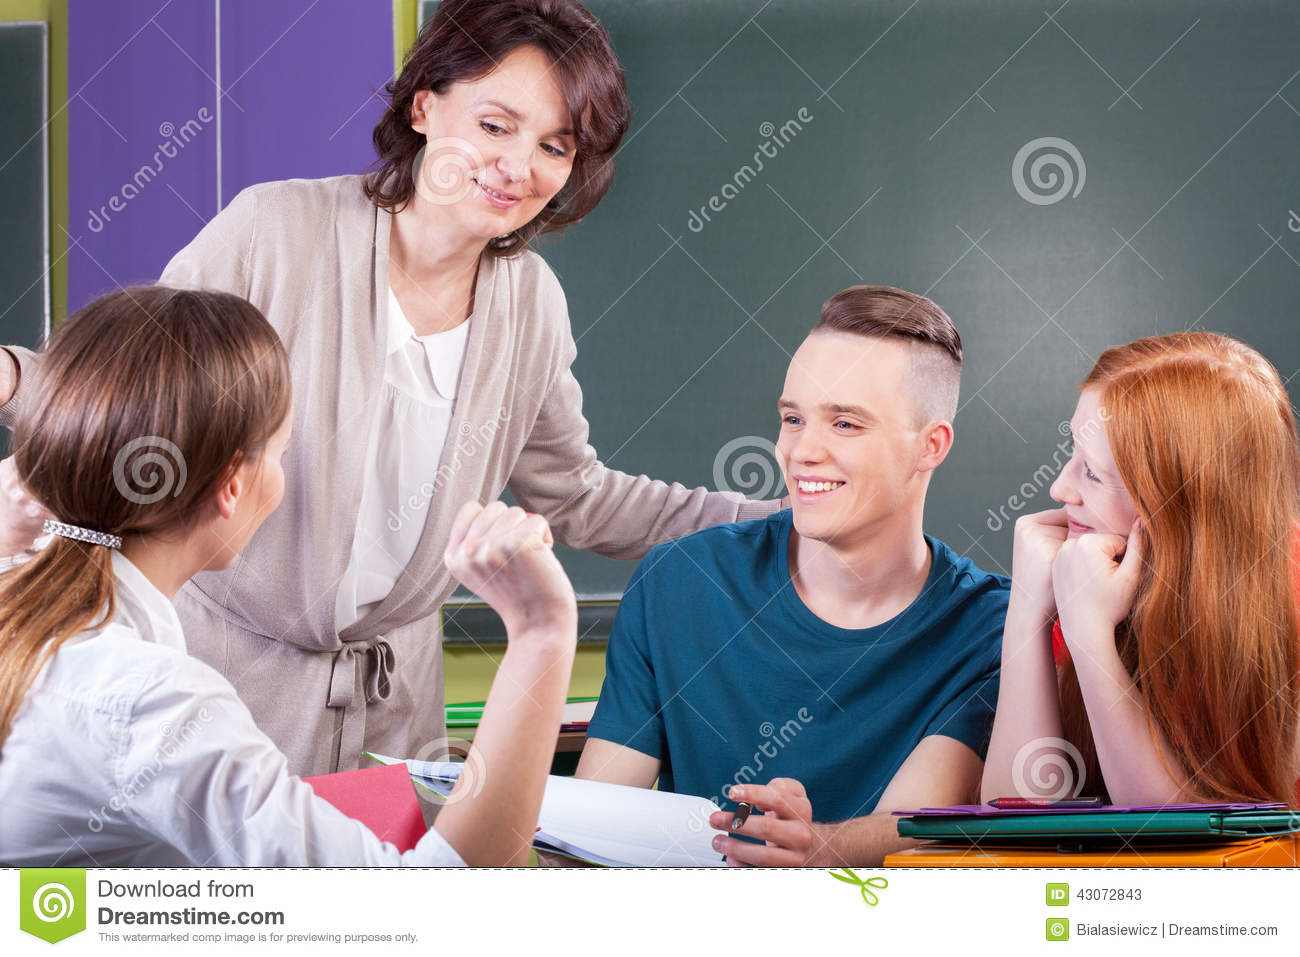 Students working in group on lesson